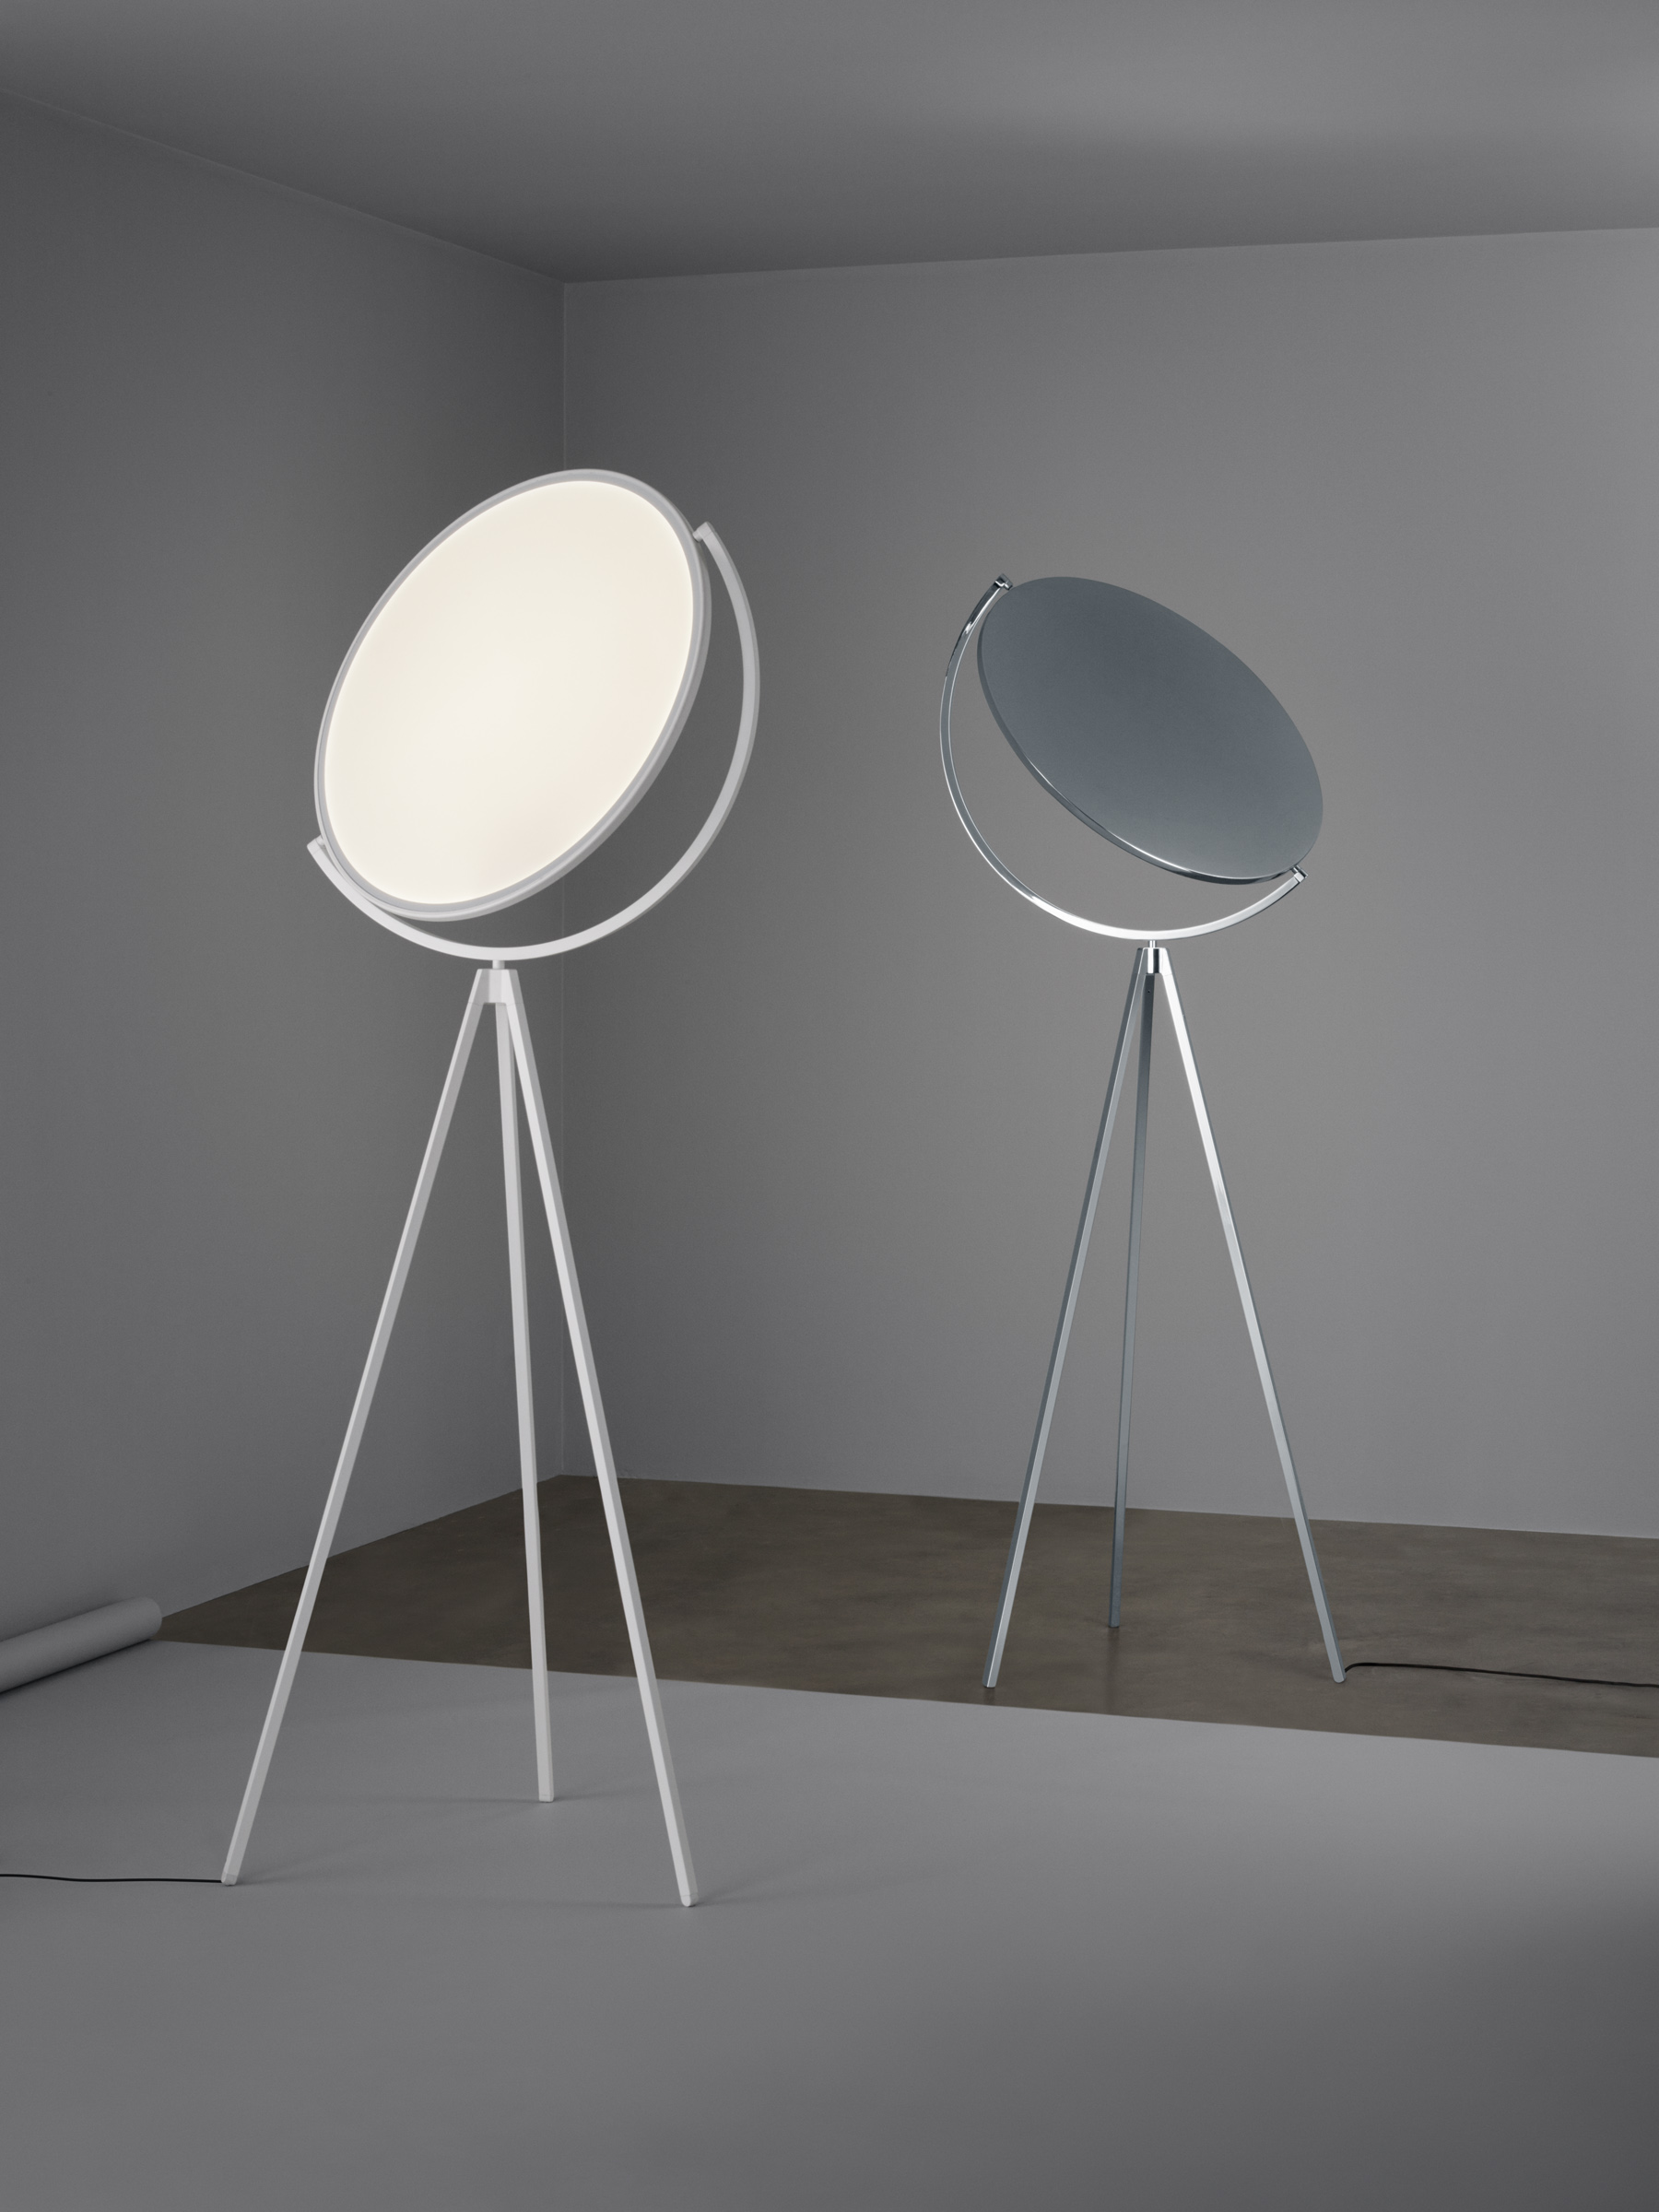 Jasper Morrison's 'Superloon' for Flos exploits the incredible possibilities of LED with a pivoting flat disc.